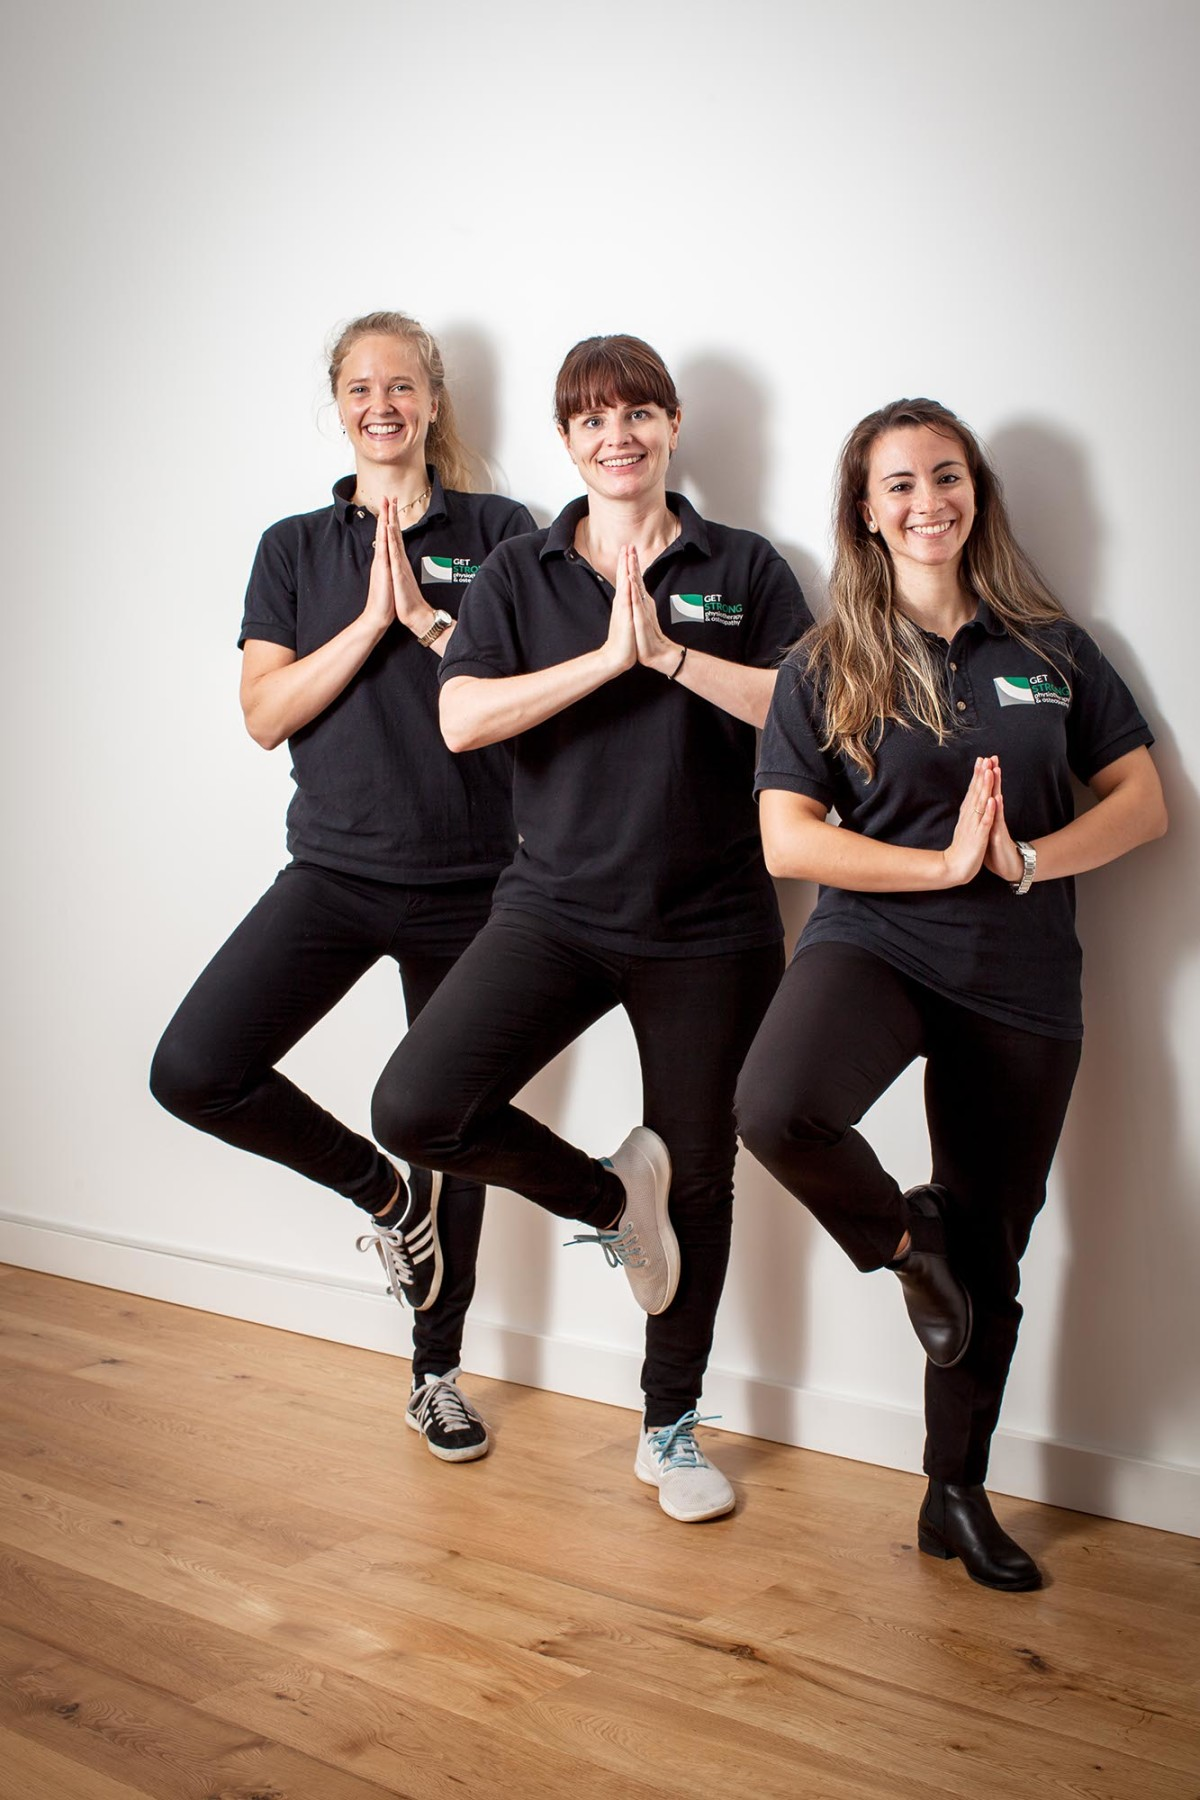 Behind the scenes photo shoot, the team at Get Strong physiotherapy & osteopathy